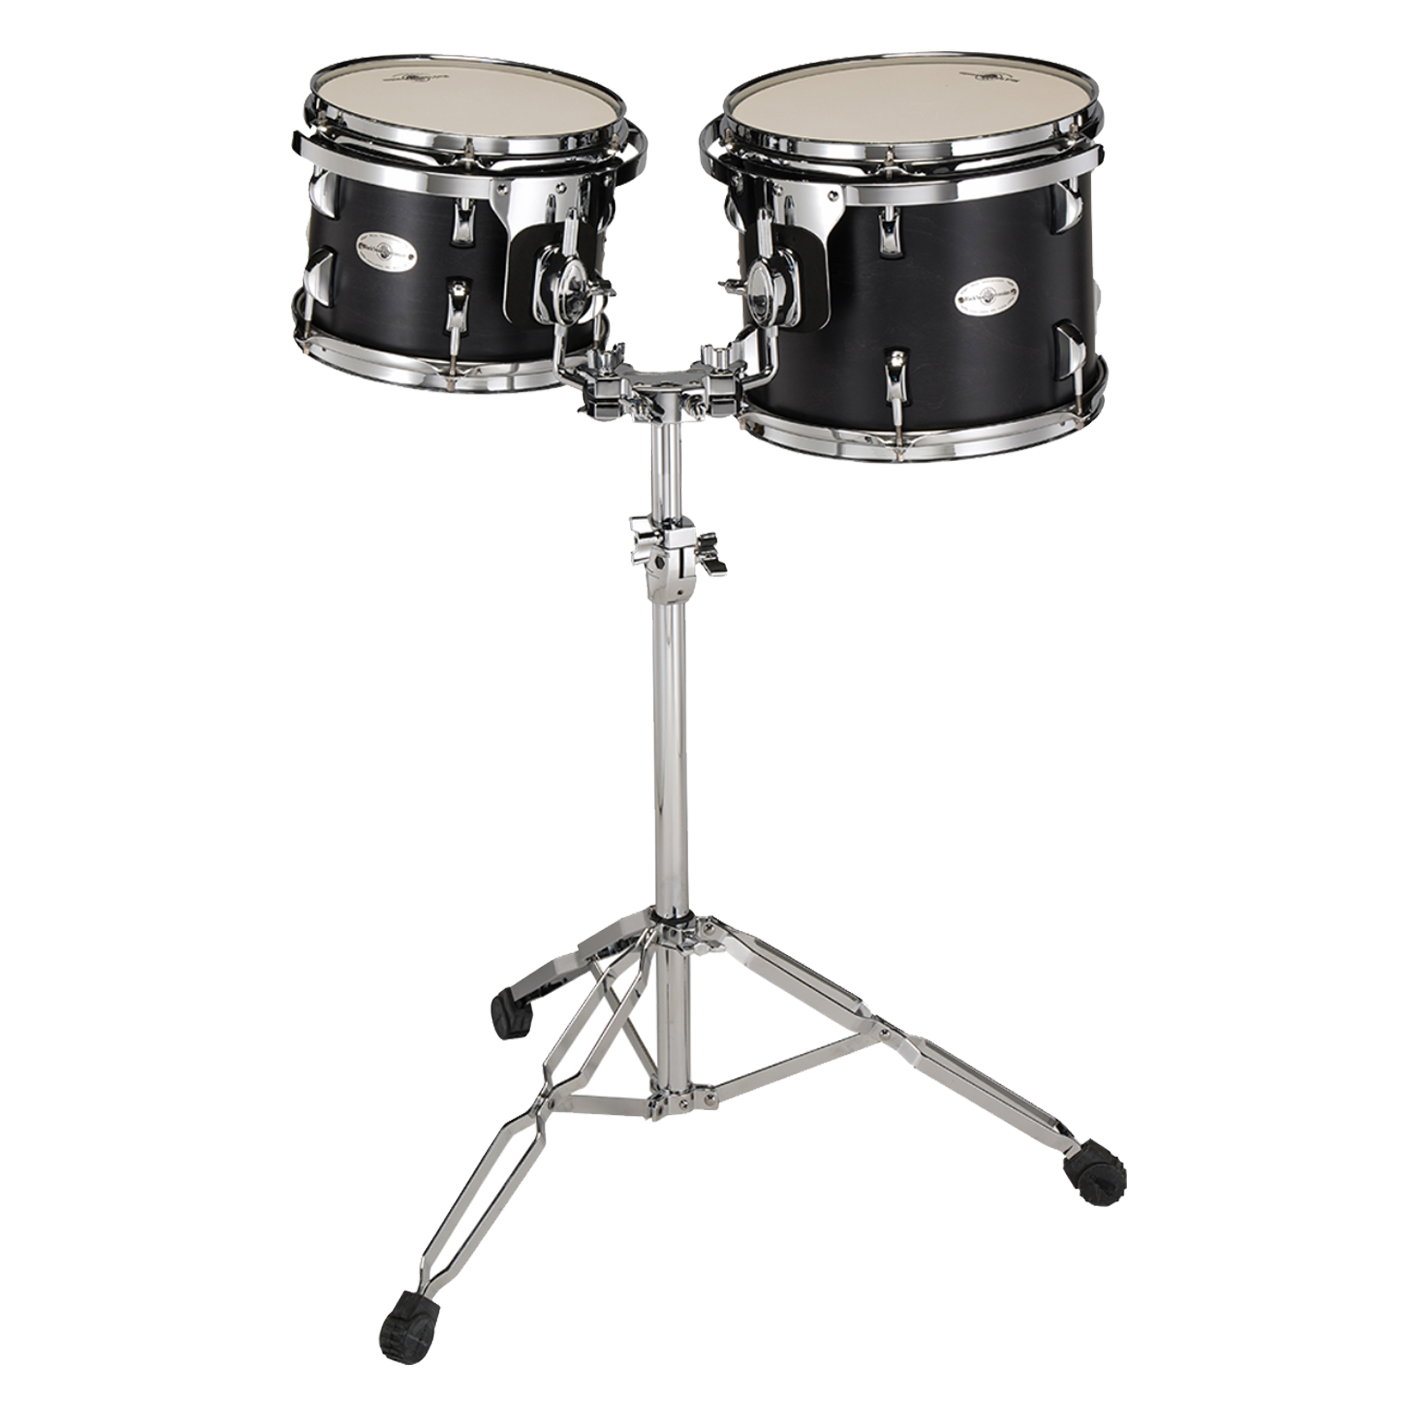 "Black Swamp - 10"" and 12"" Concert Toms Set with Stand-Percussion Accessories-Black Swamp-Music Elements"